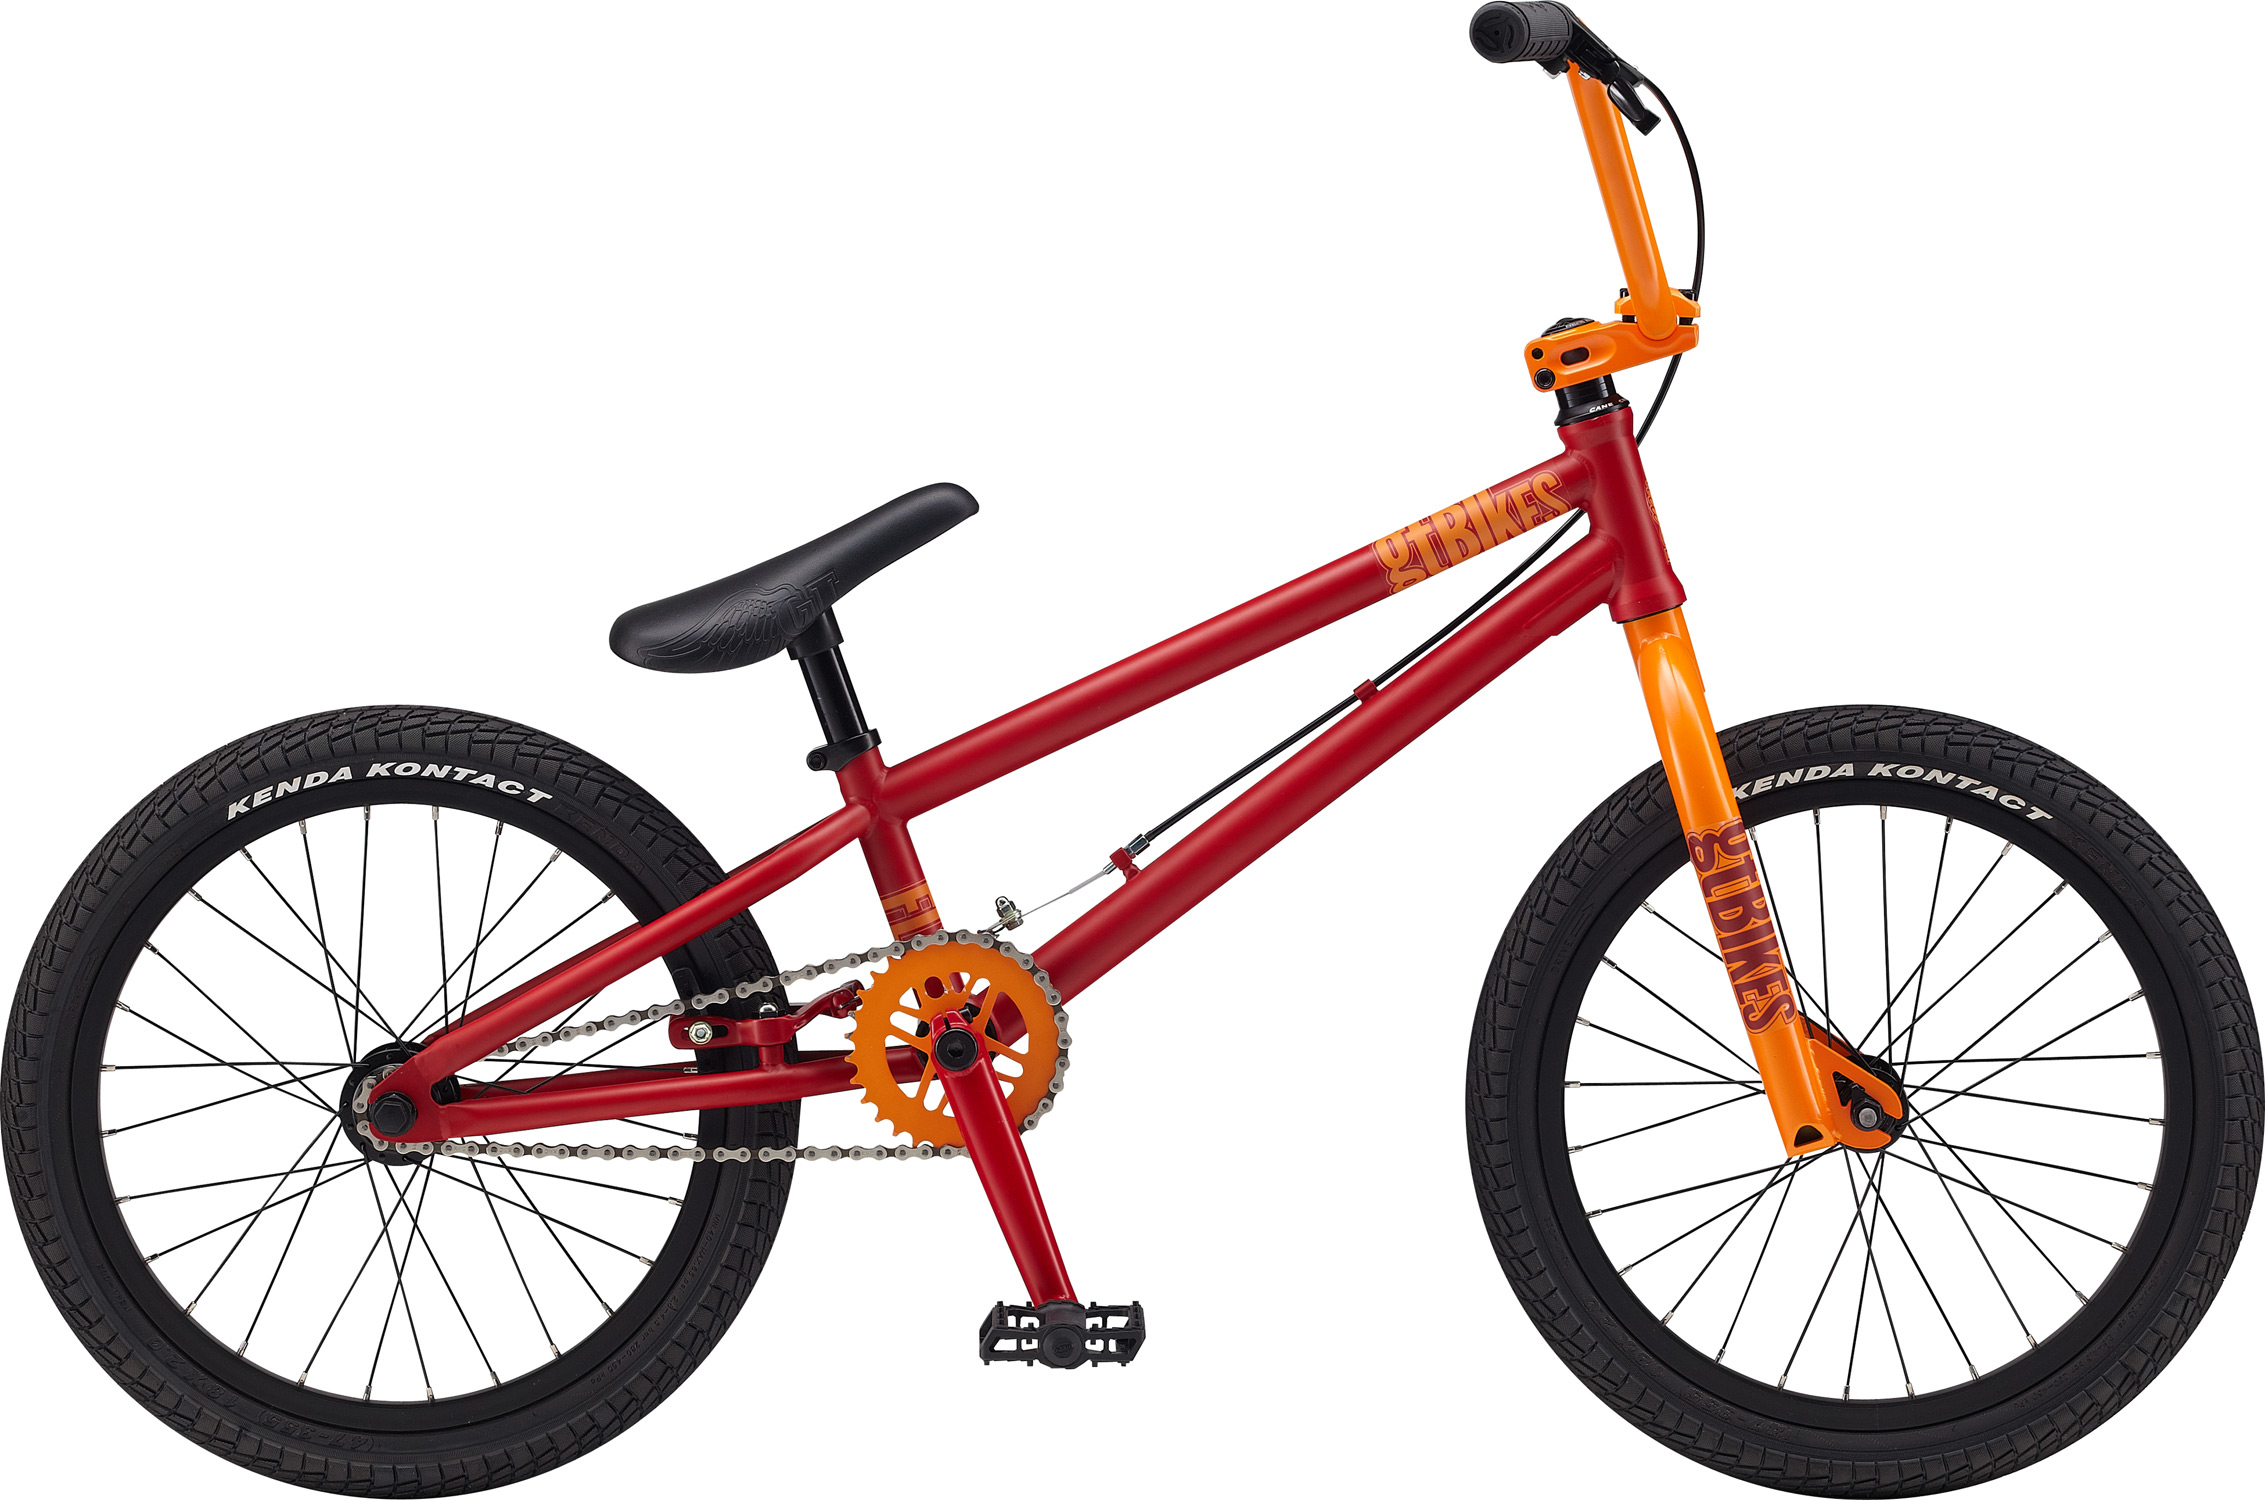 "BMX Key Features of the GT Fly BMX Bike 18"": Frame: NEW Straight Gauge, Hi-Ten, Dumped C/S, TripleTriangle™, 14mm Dropouts, S/S Mounted Brake Mounts Front Suspension: GT, Full Hi-Ten, 31.8-28.6 Taper, 3/8, 1 1/8"" Crankset: GT Cro-Mo 3 Pcs, 8T, 160mm 30T Wheels/Hubs: GT Al Cassette Loose Ball, 3/8""F, 3/8""R 28F, 28R Hole Brakes: Tektro FX340R - $249.99"